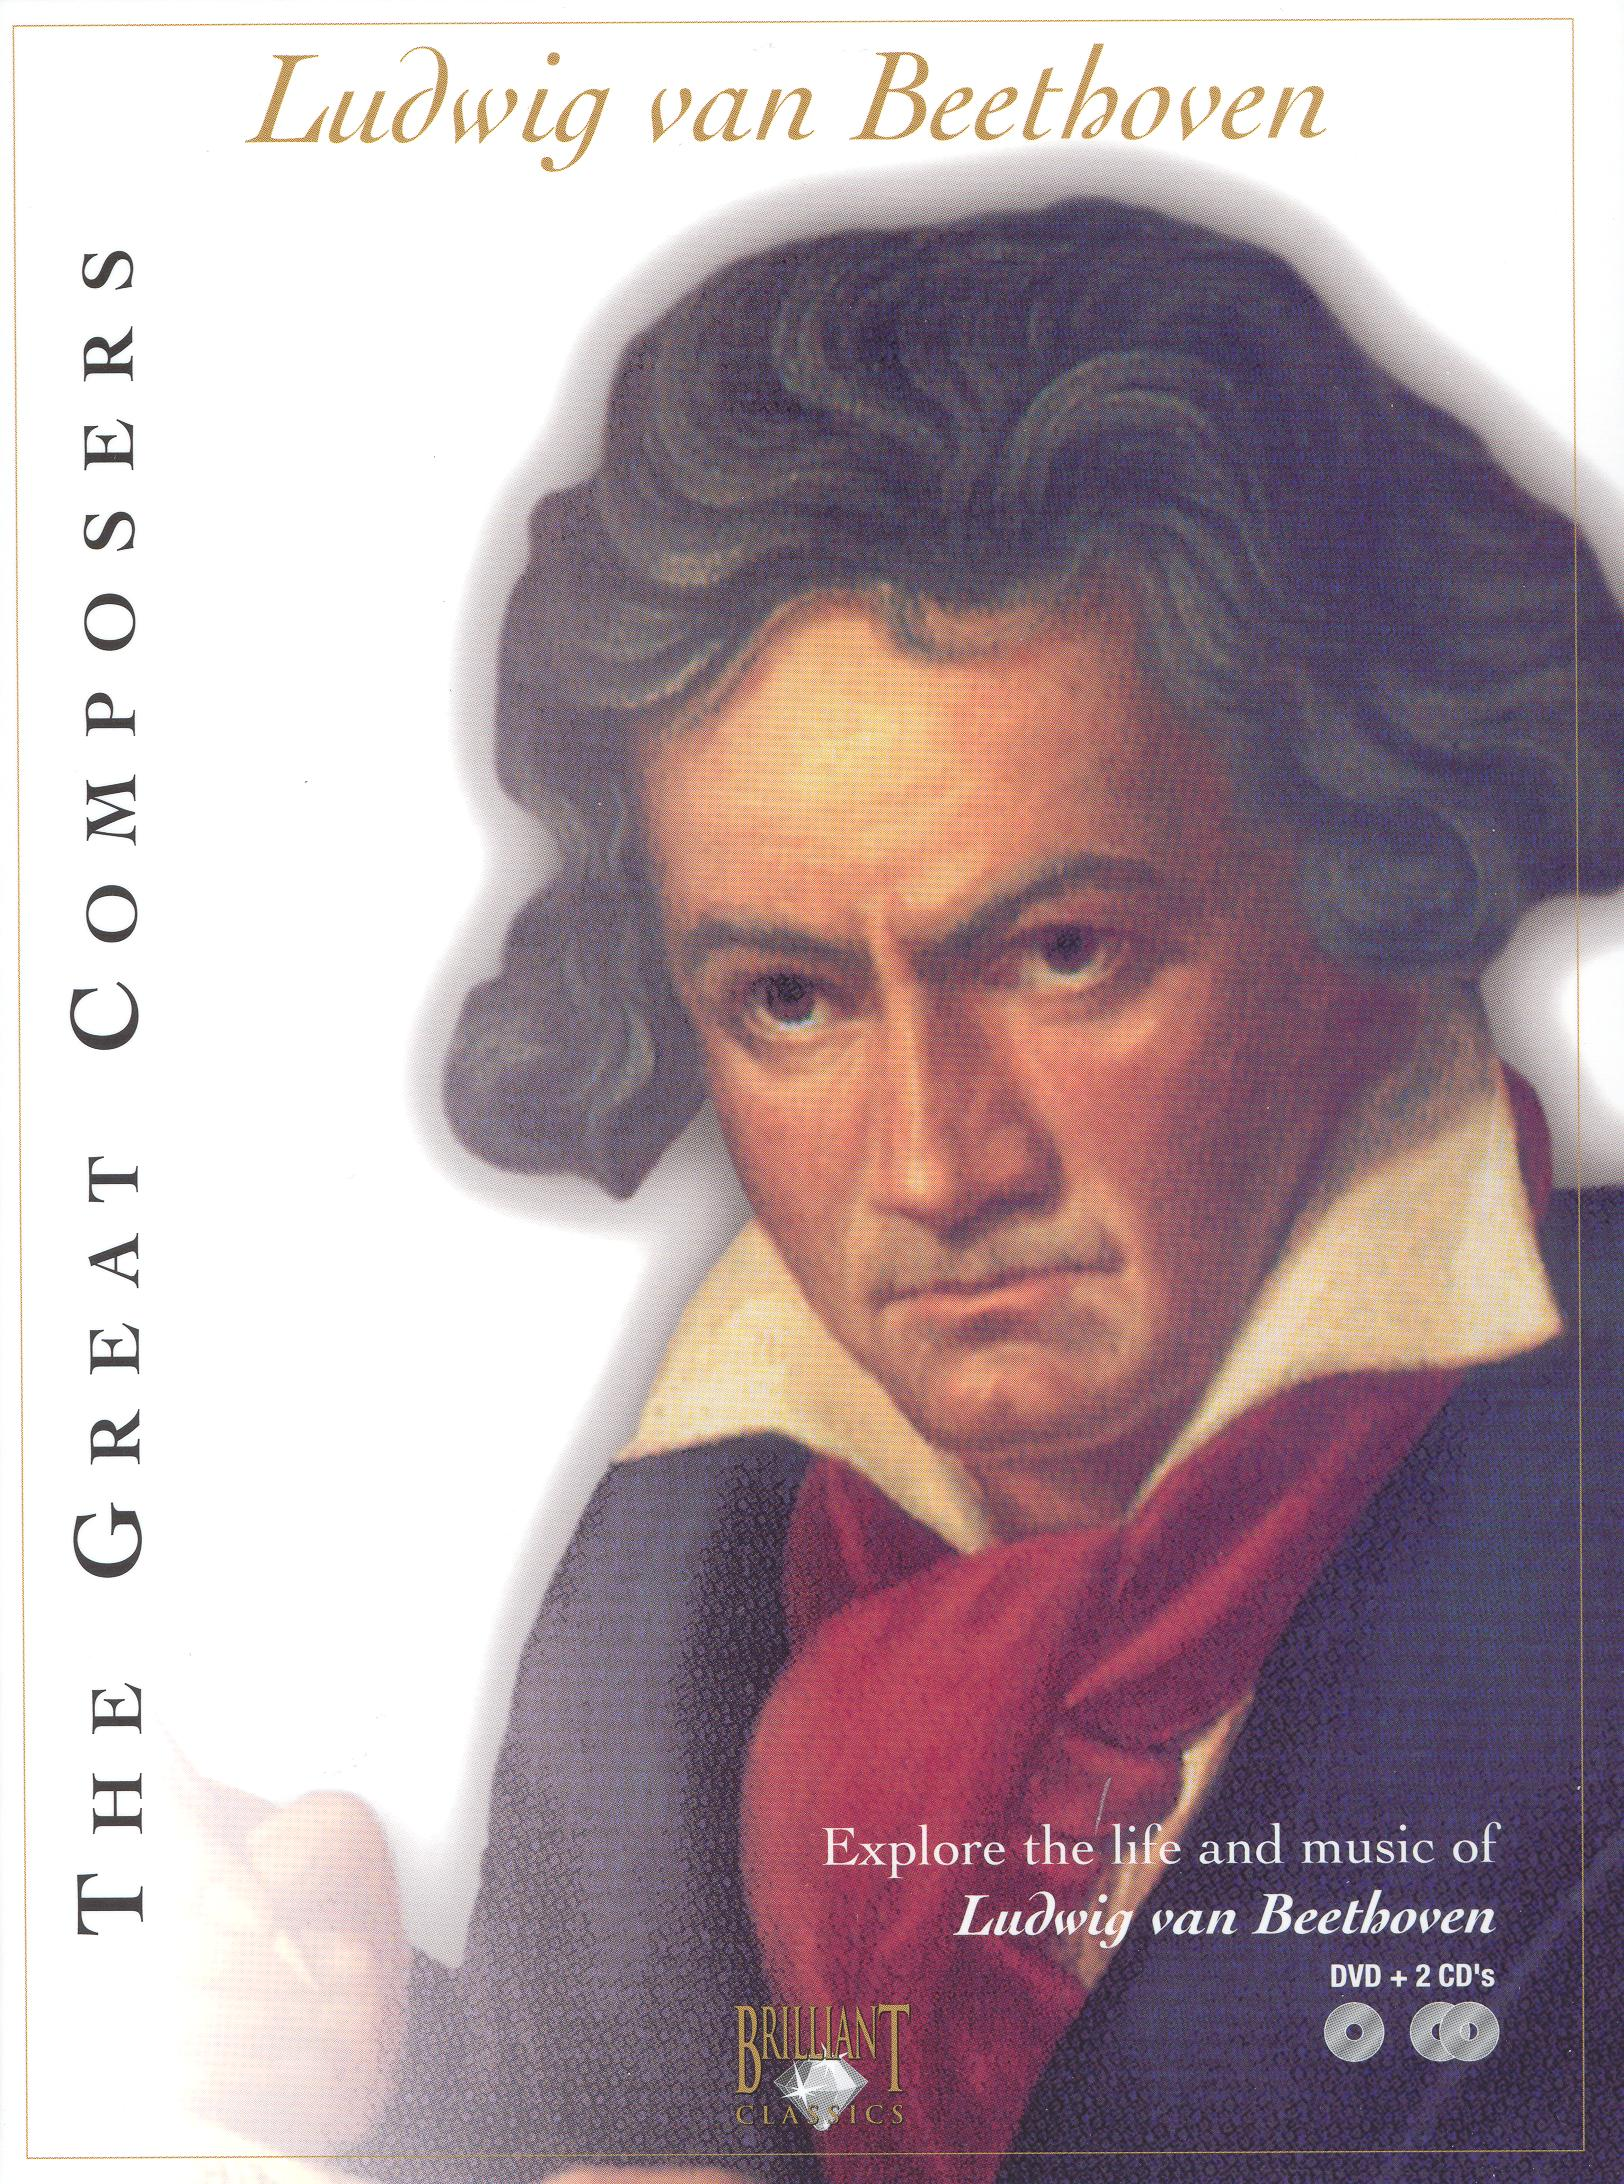 The Great Composers: Ludwig van Beethoven